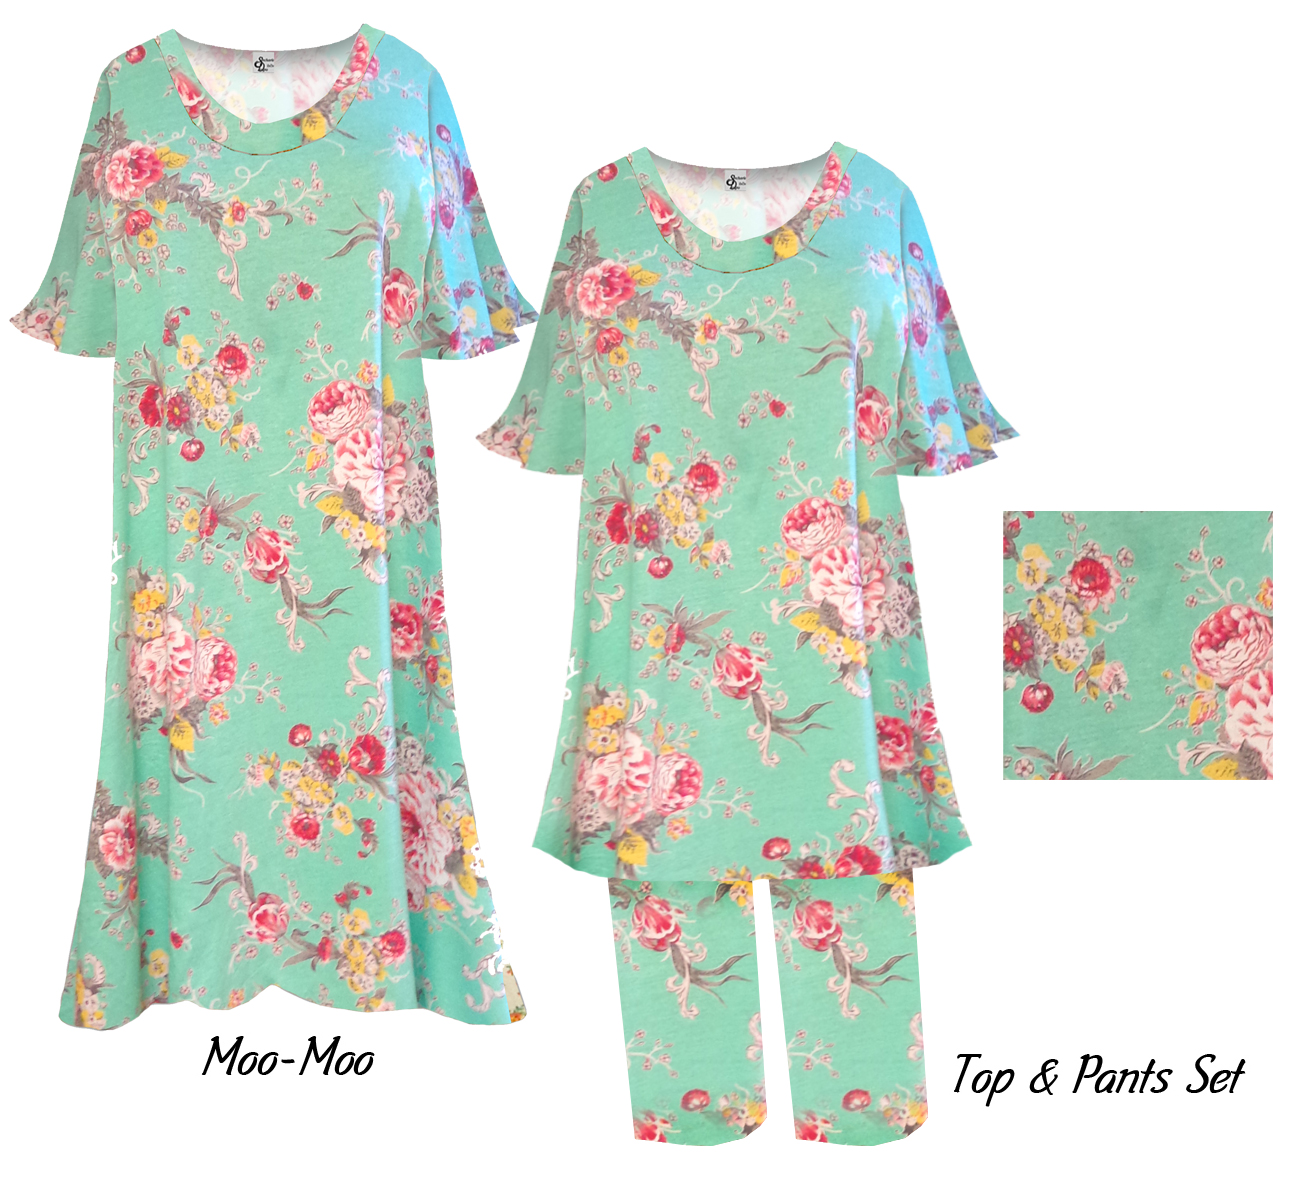 SOLD OUT! Mint Green Spring Flowers Print Moo Moo Dress Plus Size ...